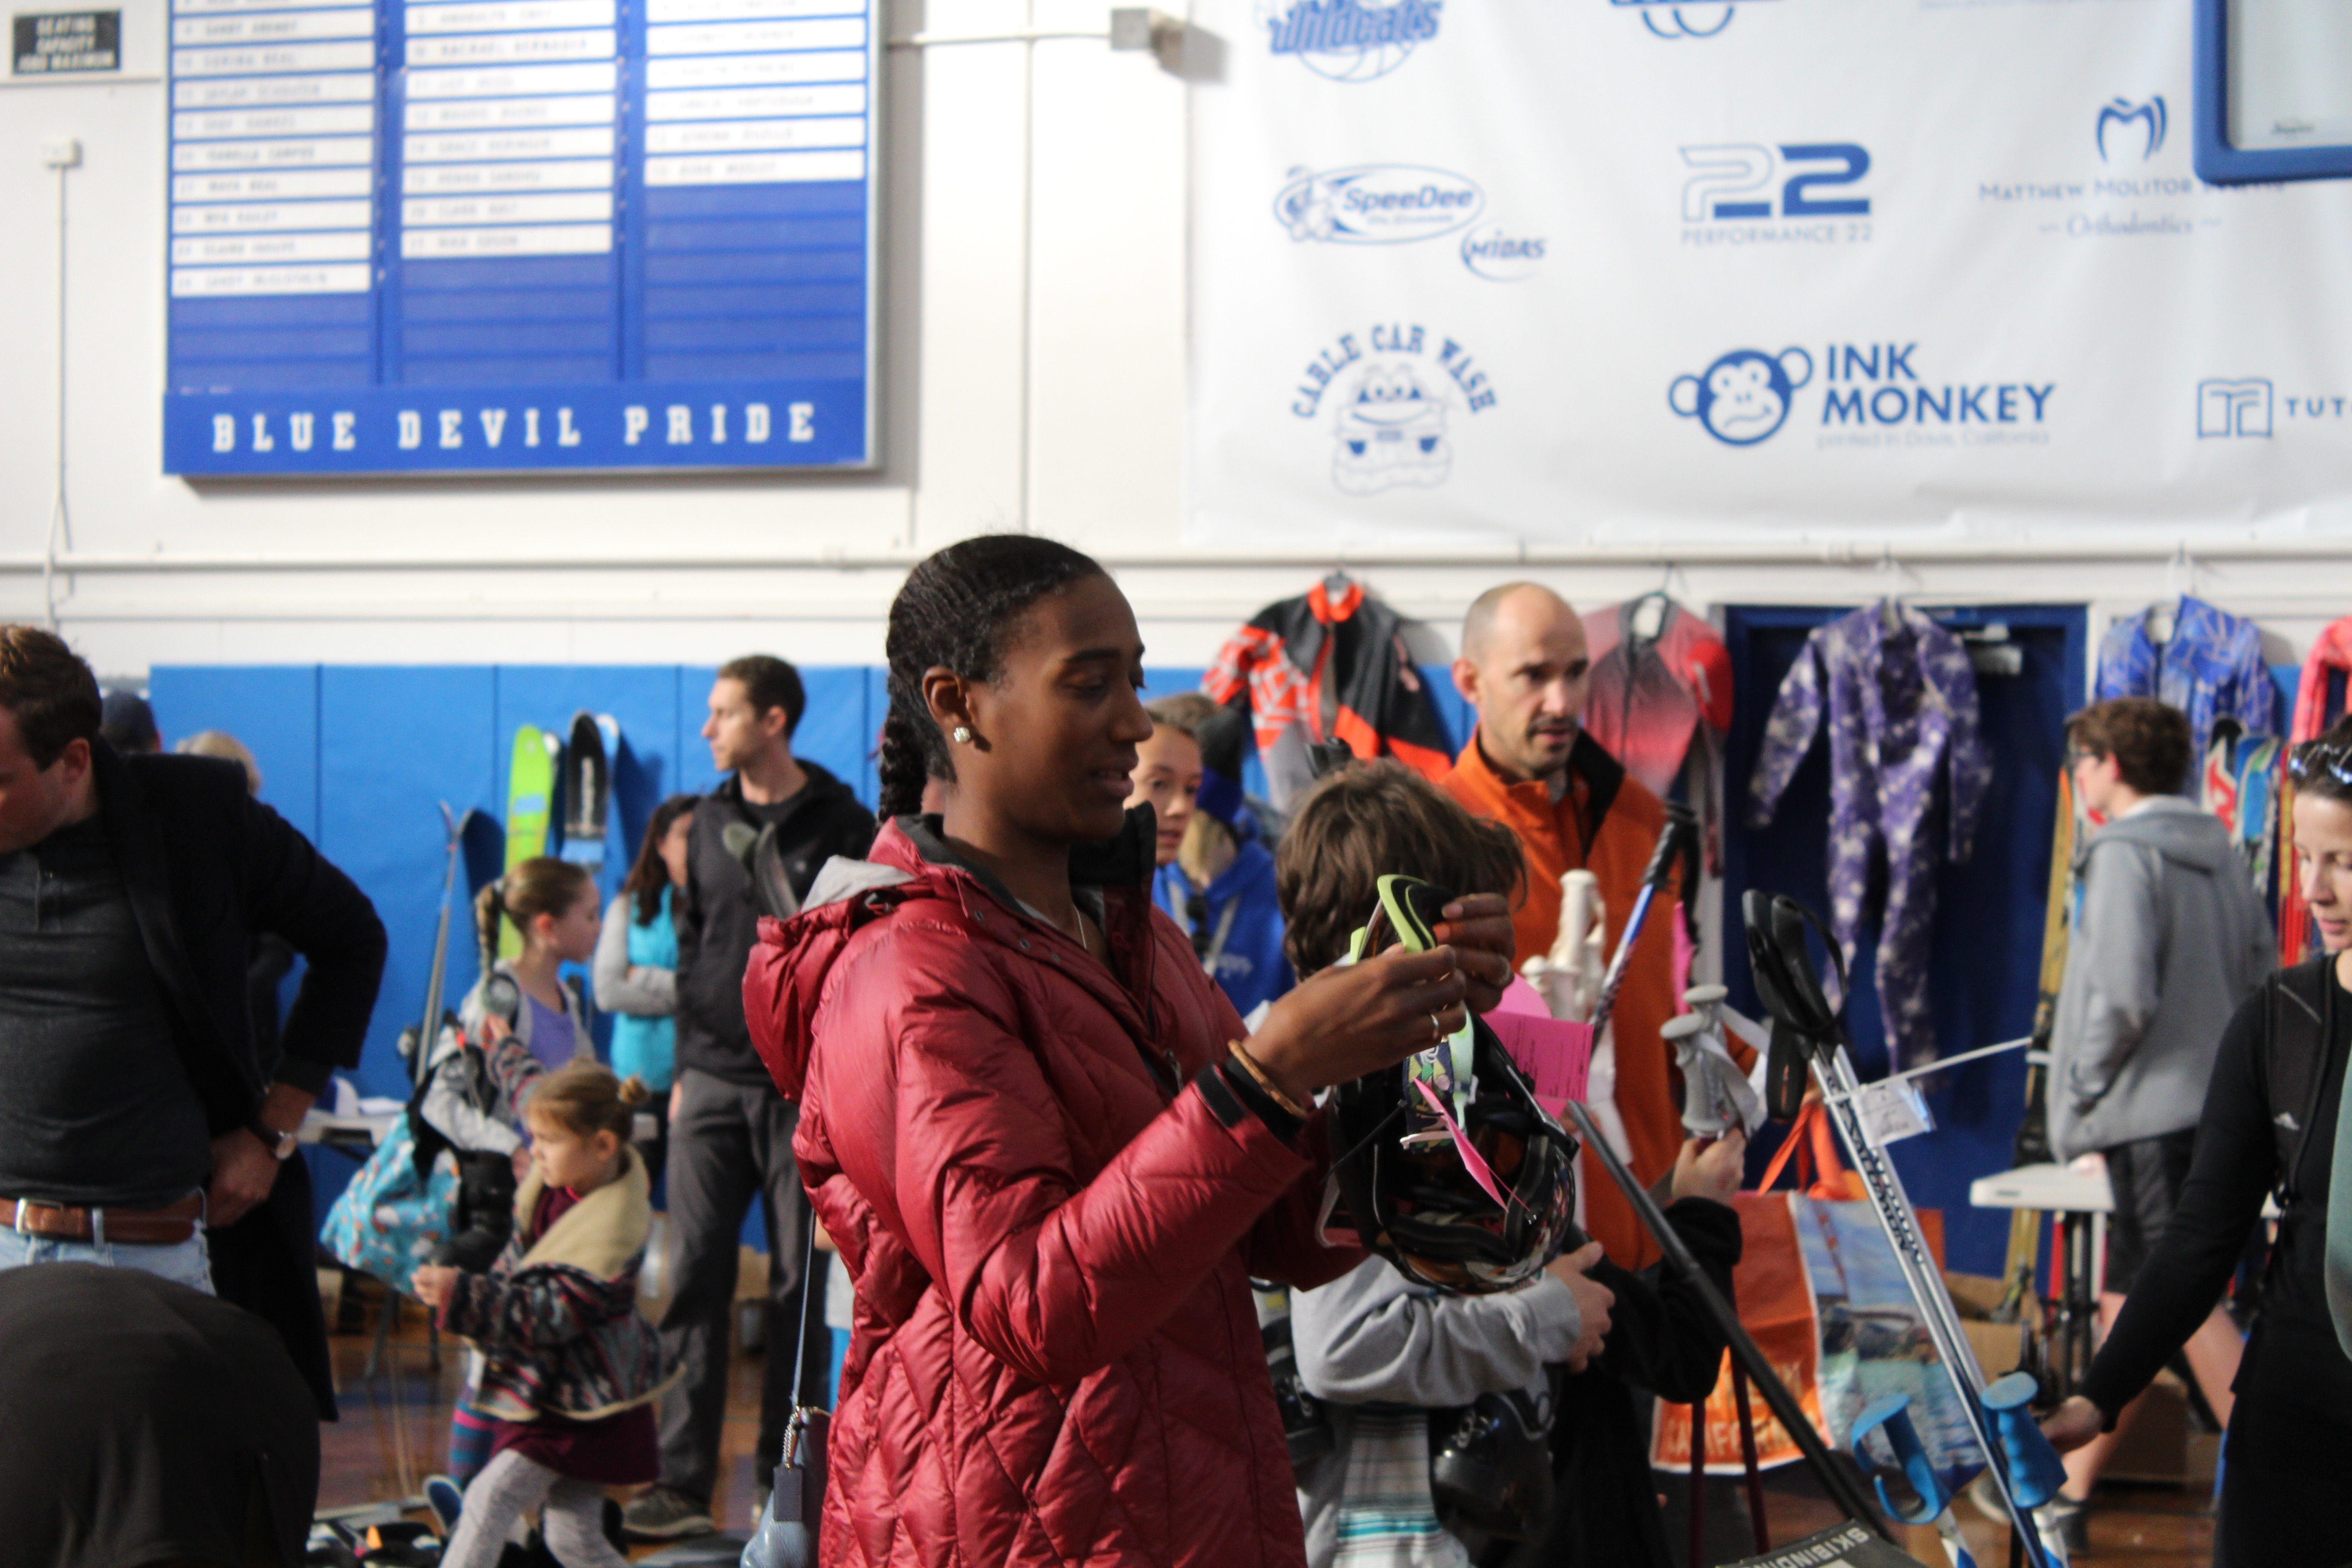 The ski swap is a great place for anyone looking to find bargains on ski equipment.